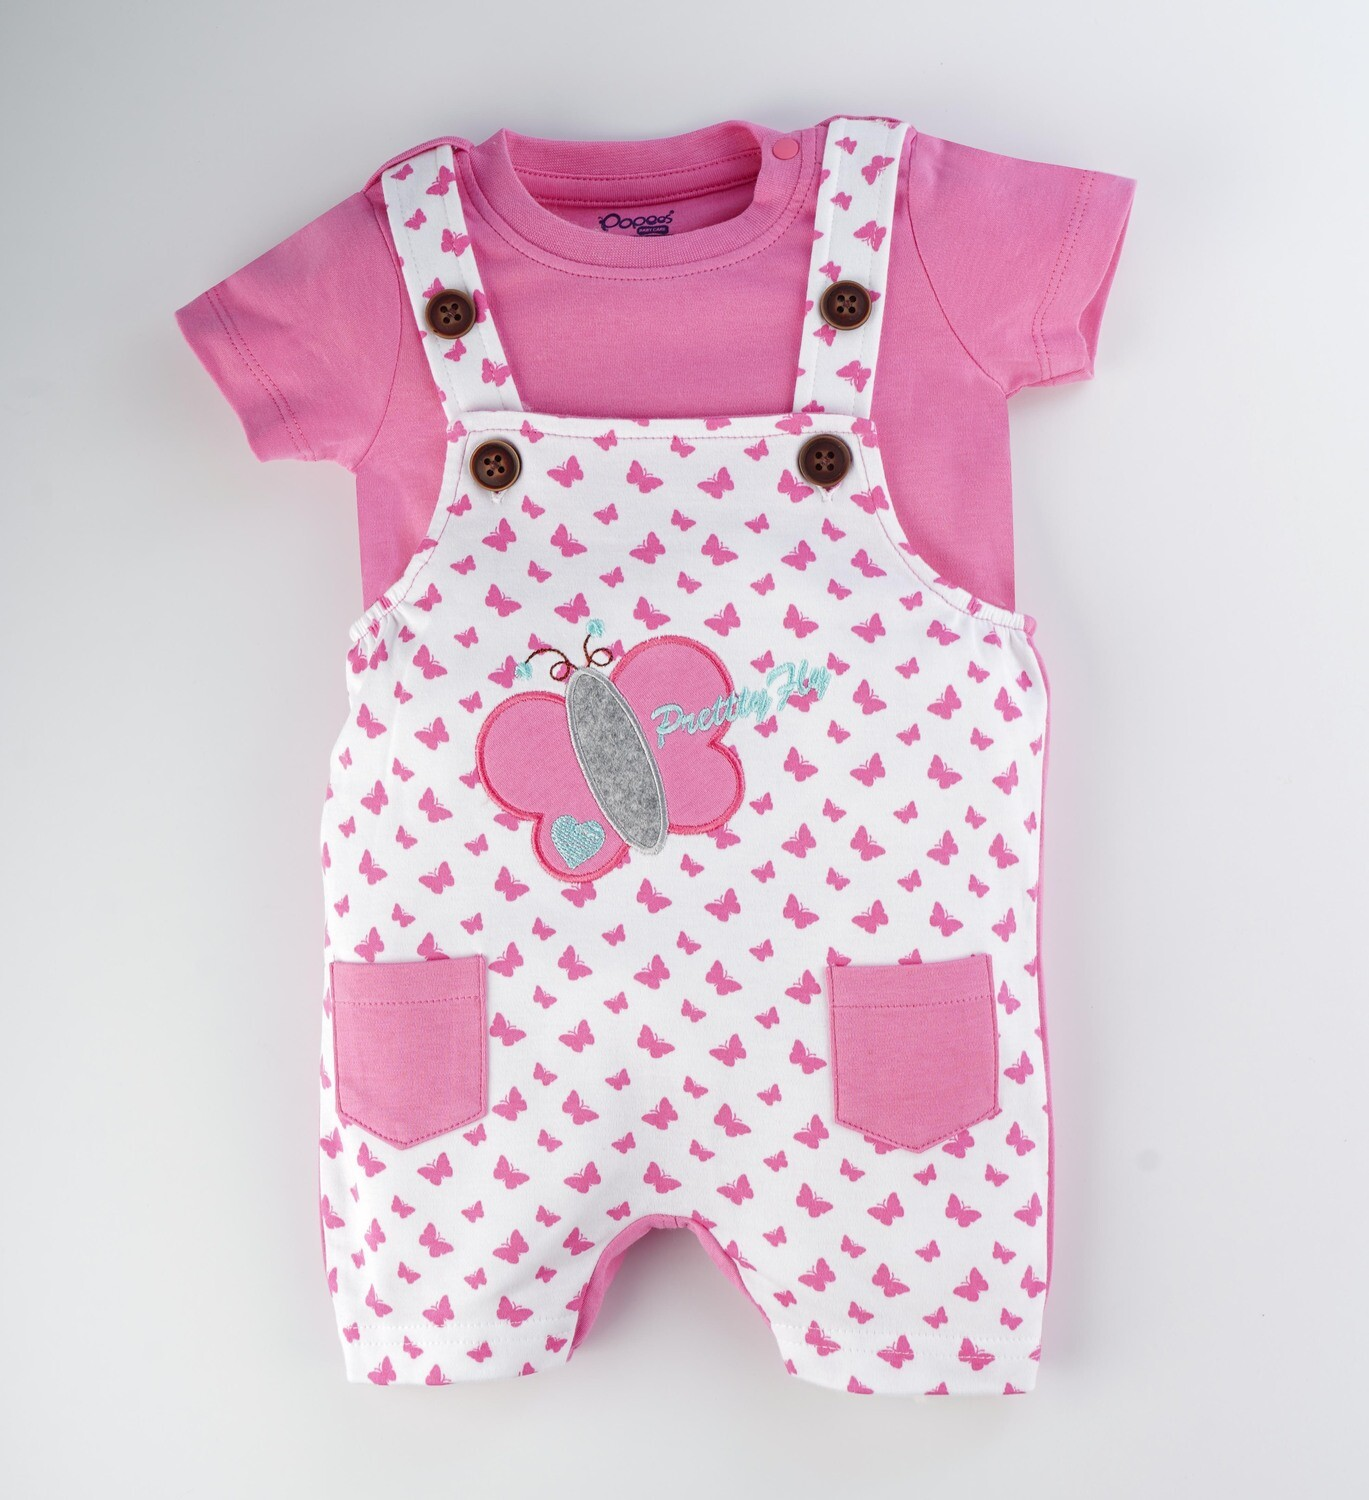 Tibby Azalea Pink Butterfly Printed Dungaree with Round Neck Half Sleeve T-Shirt for Boys